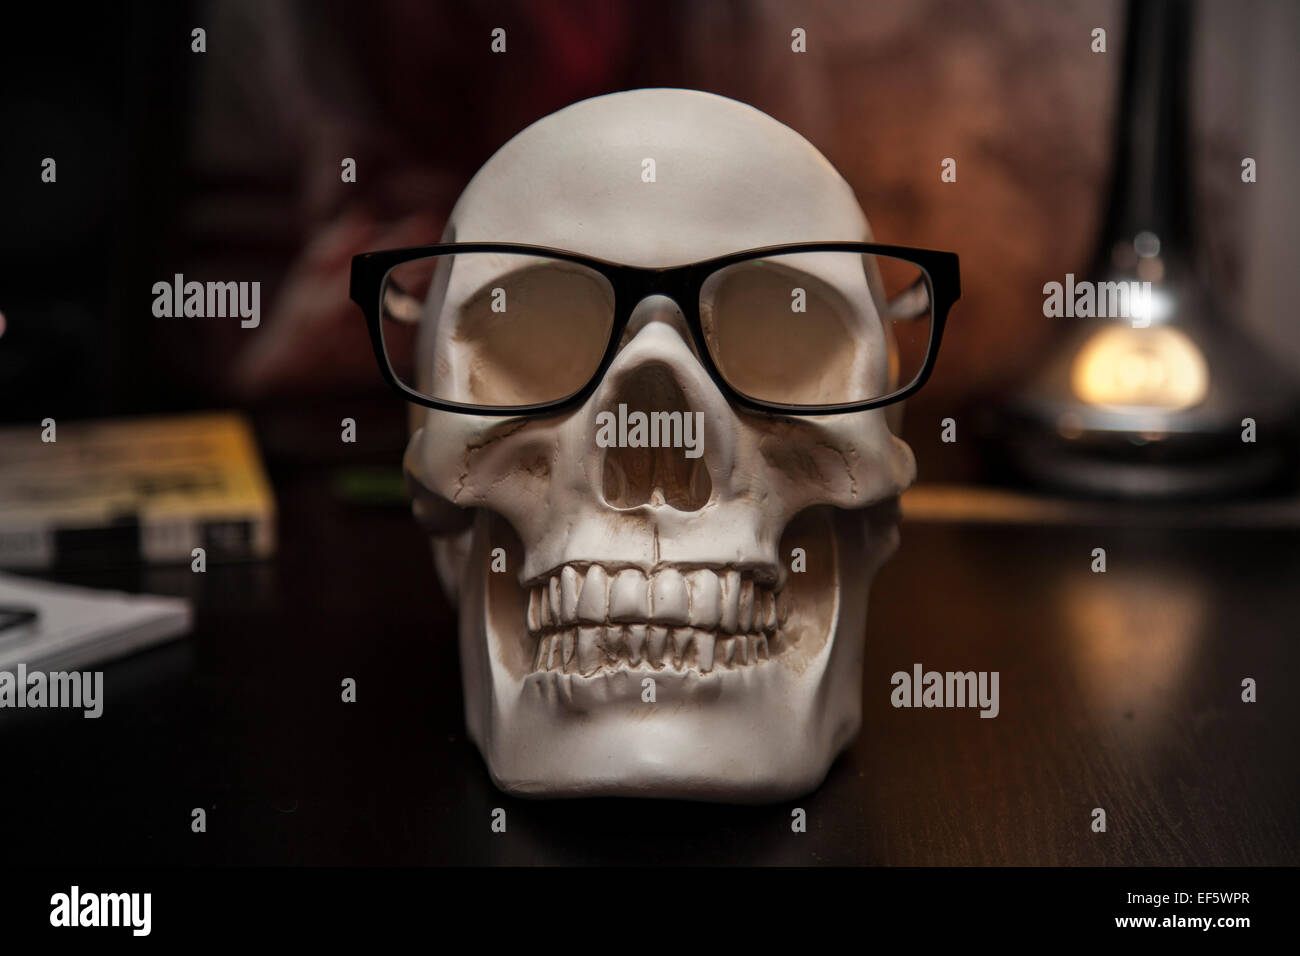 A geeky Skull Wearing Glasses - Stock Image